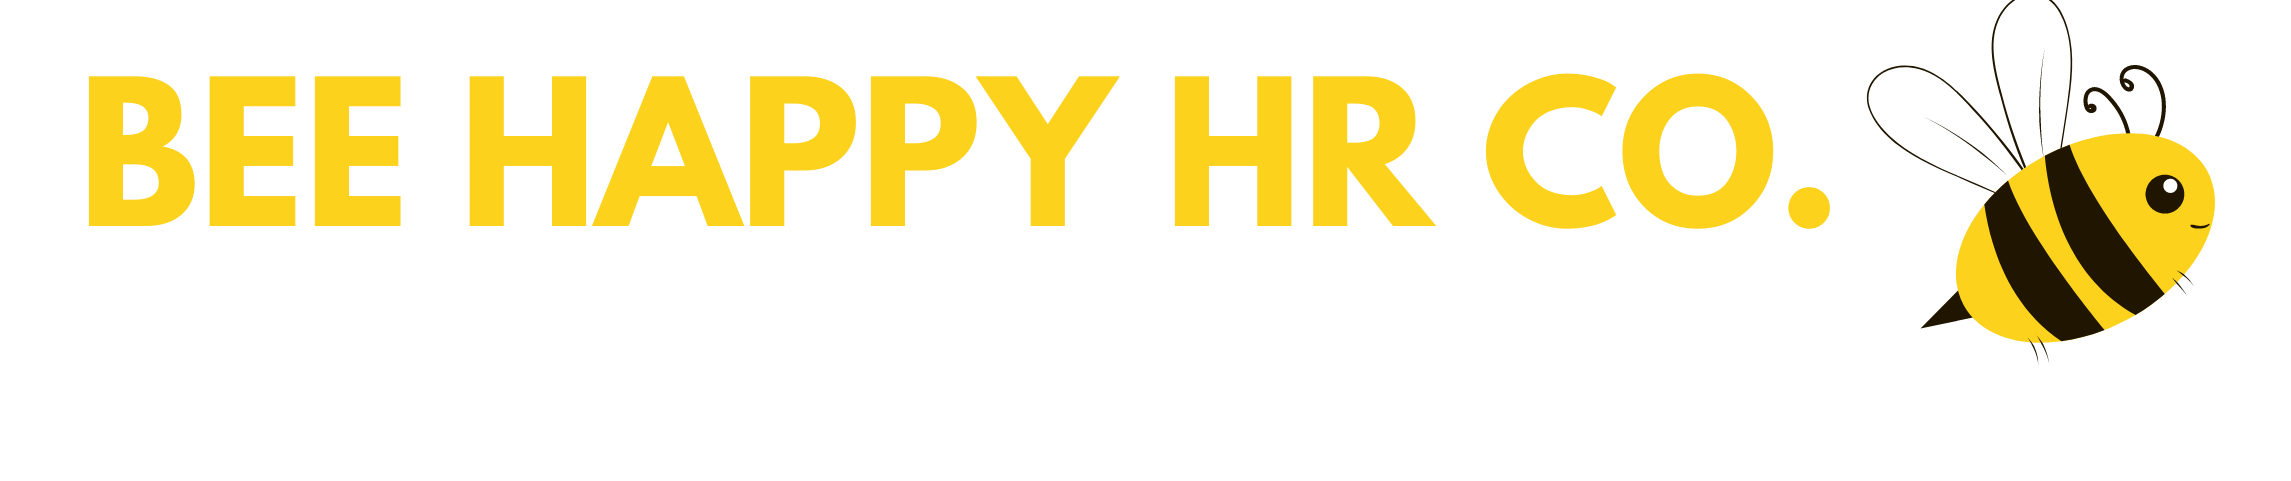 Bee Happy HR Co. Your Diverse Talent Hive For Gender Equality